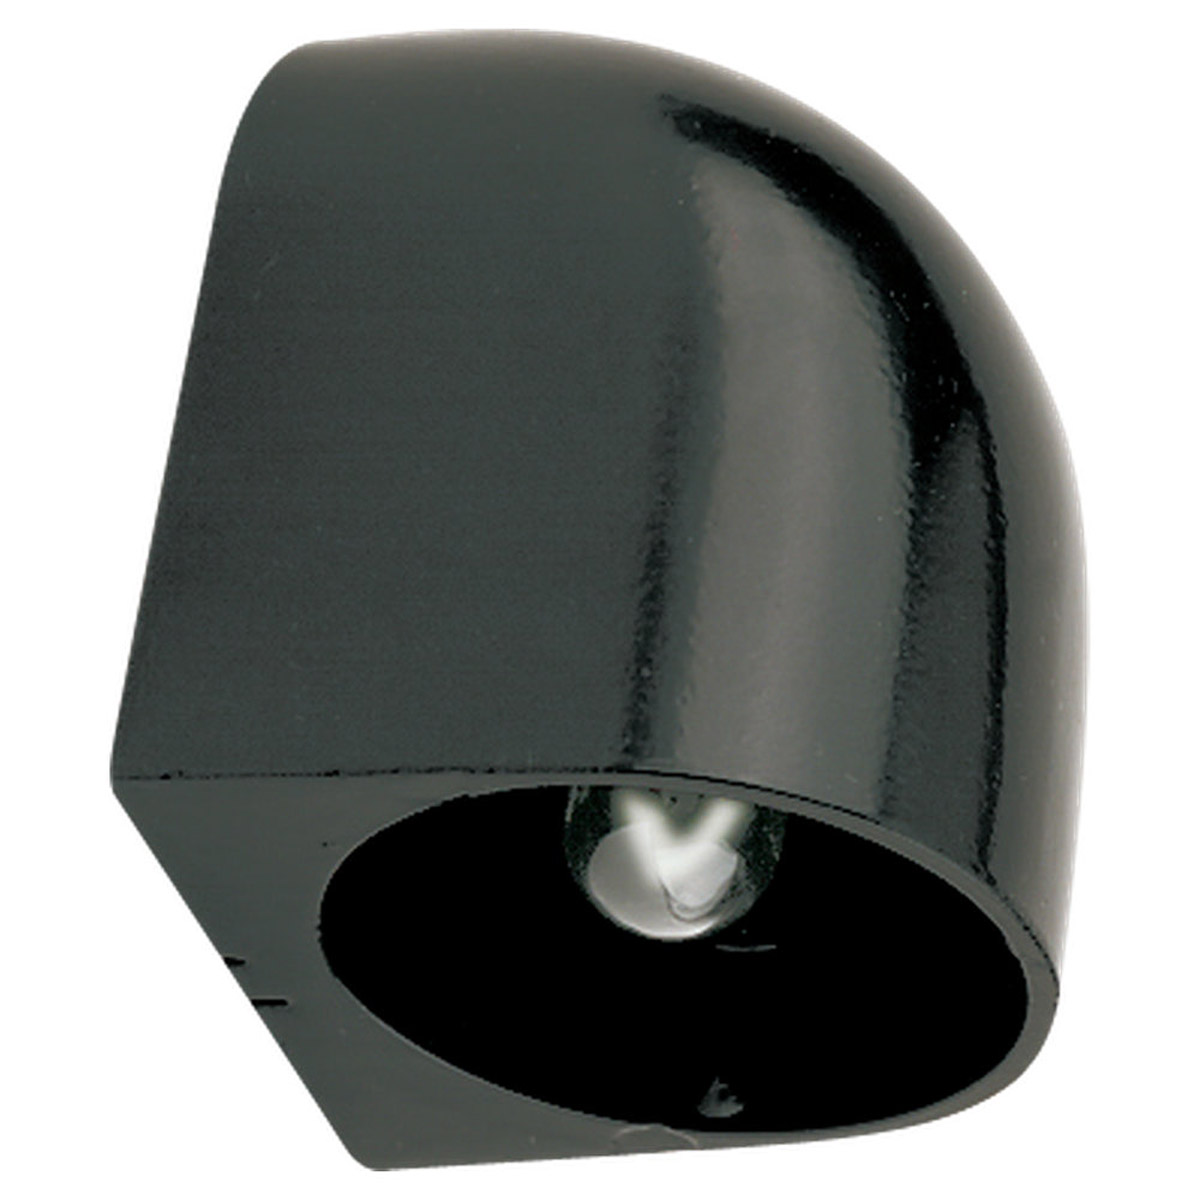 Sea Gull Lighting 2 Light Ambiance Surface Mounted Deck Light in Black 9396-12